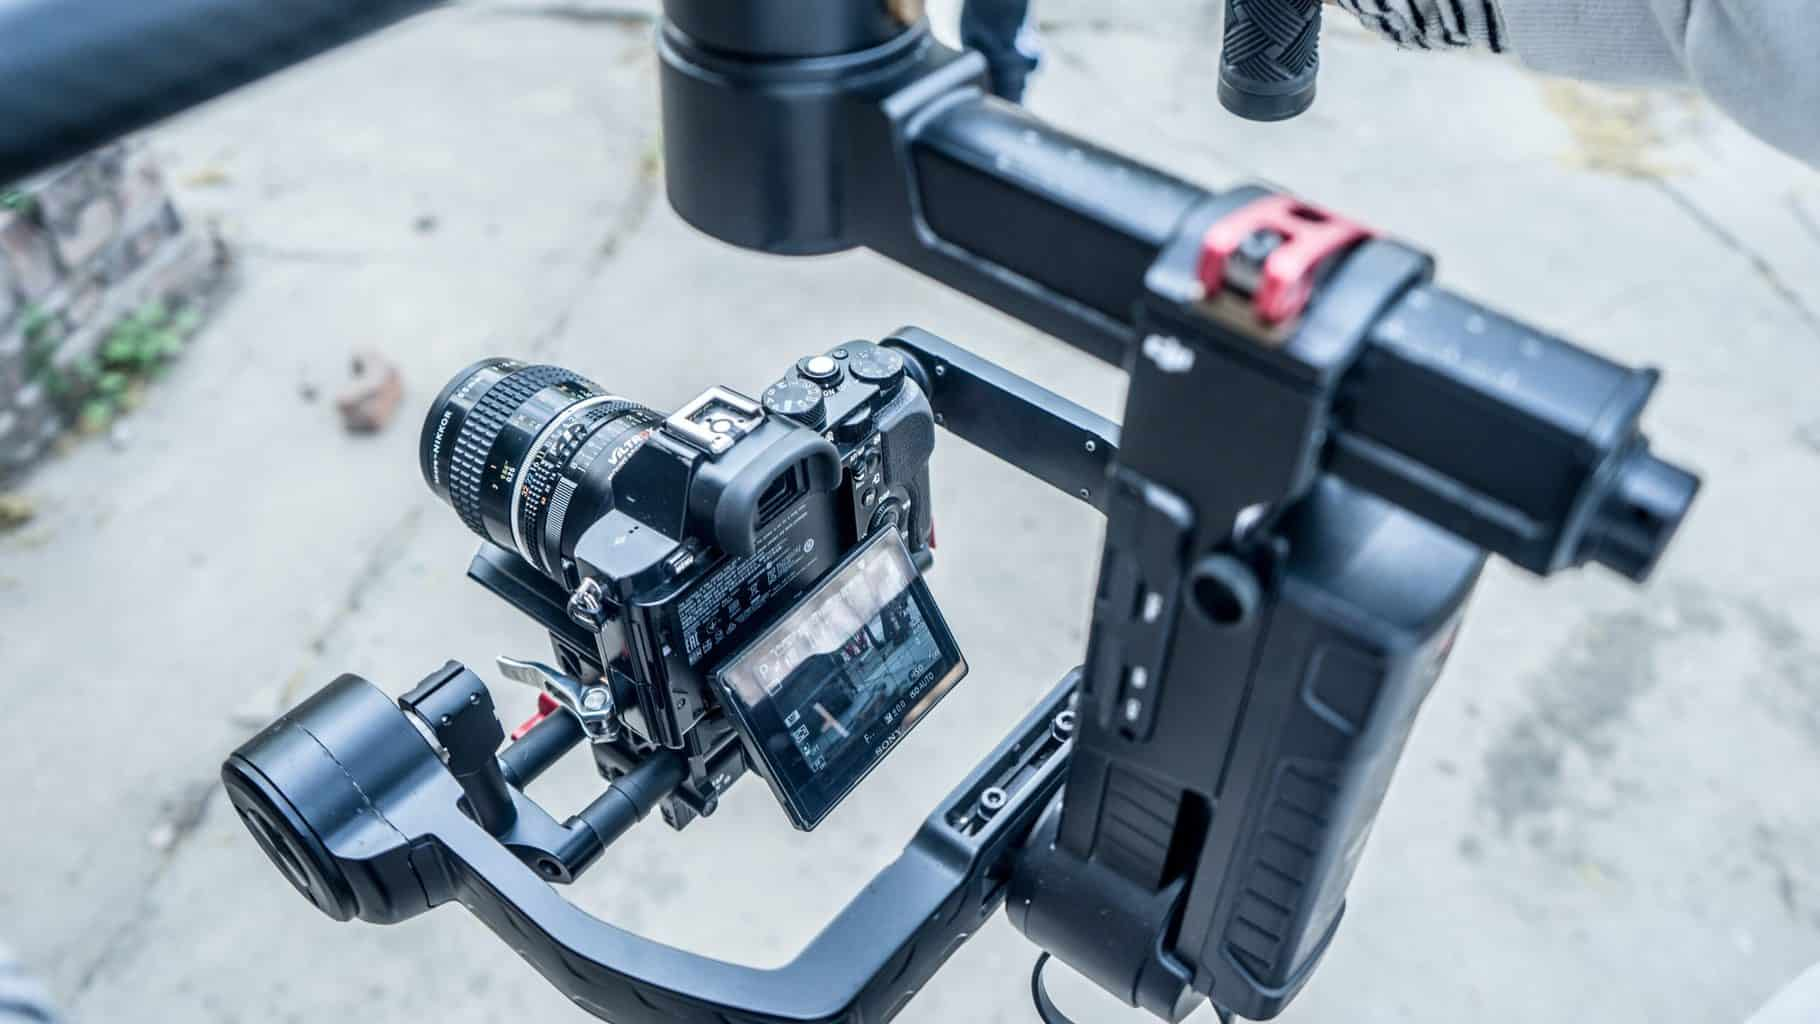 A close up shot of camera stabilizer being used